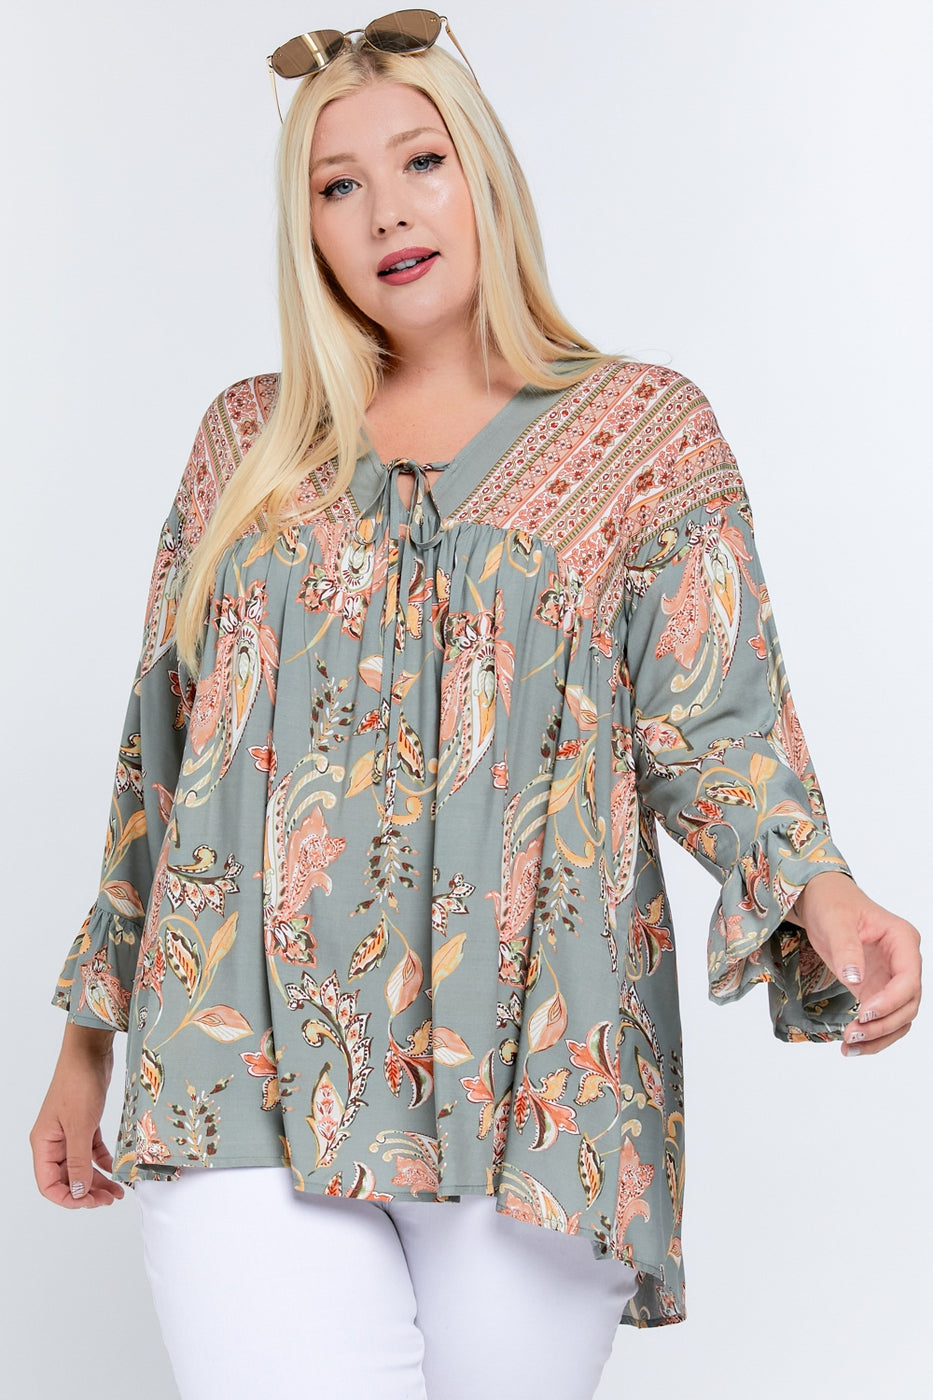 Got Your Attention Tunic in Sage - Curvy